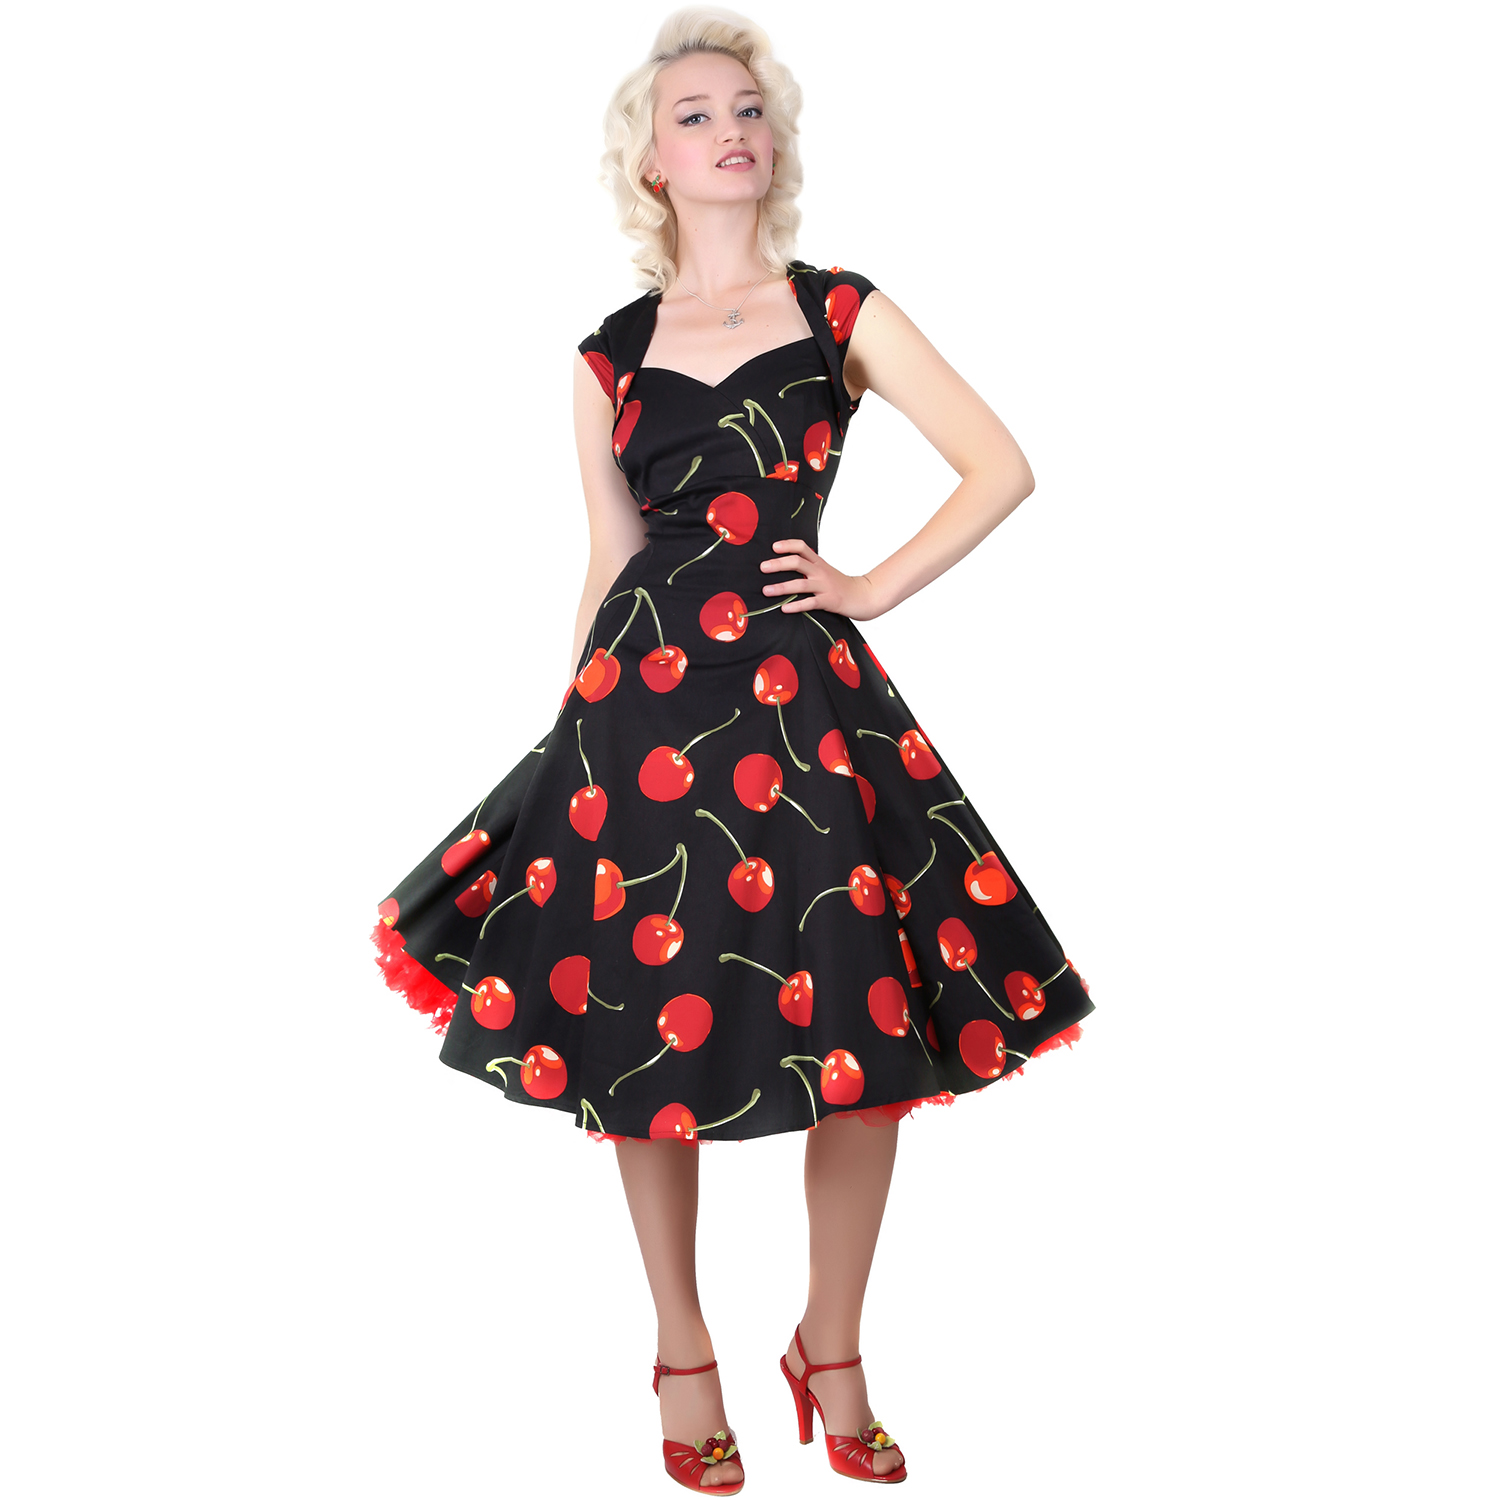 collectif doll black cherry stem vintage 1950s